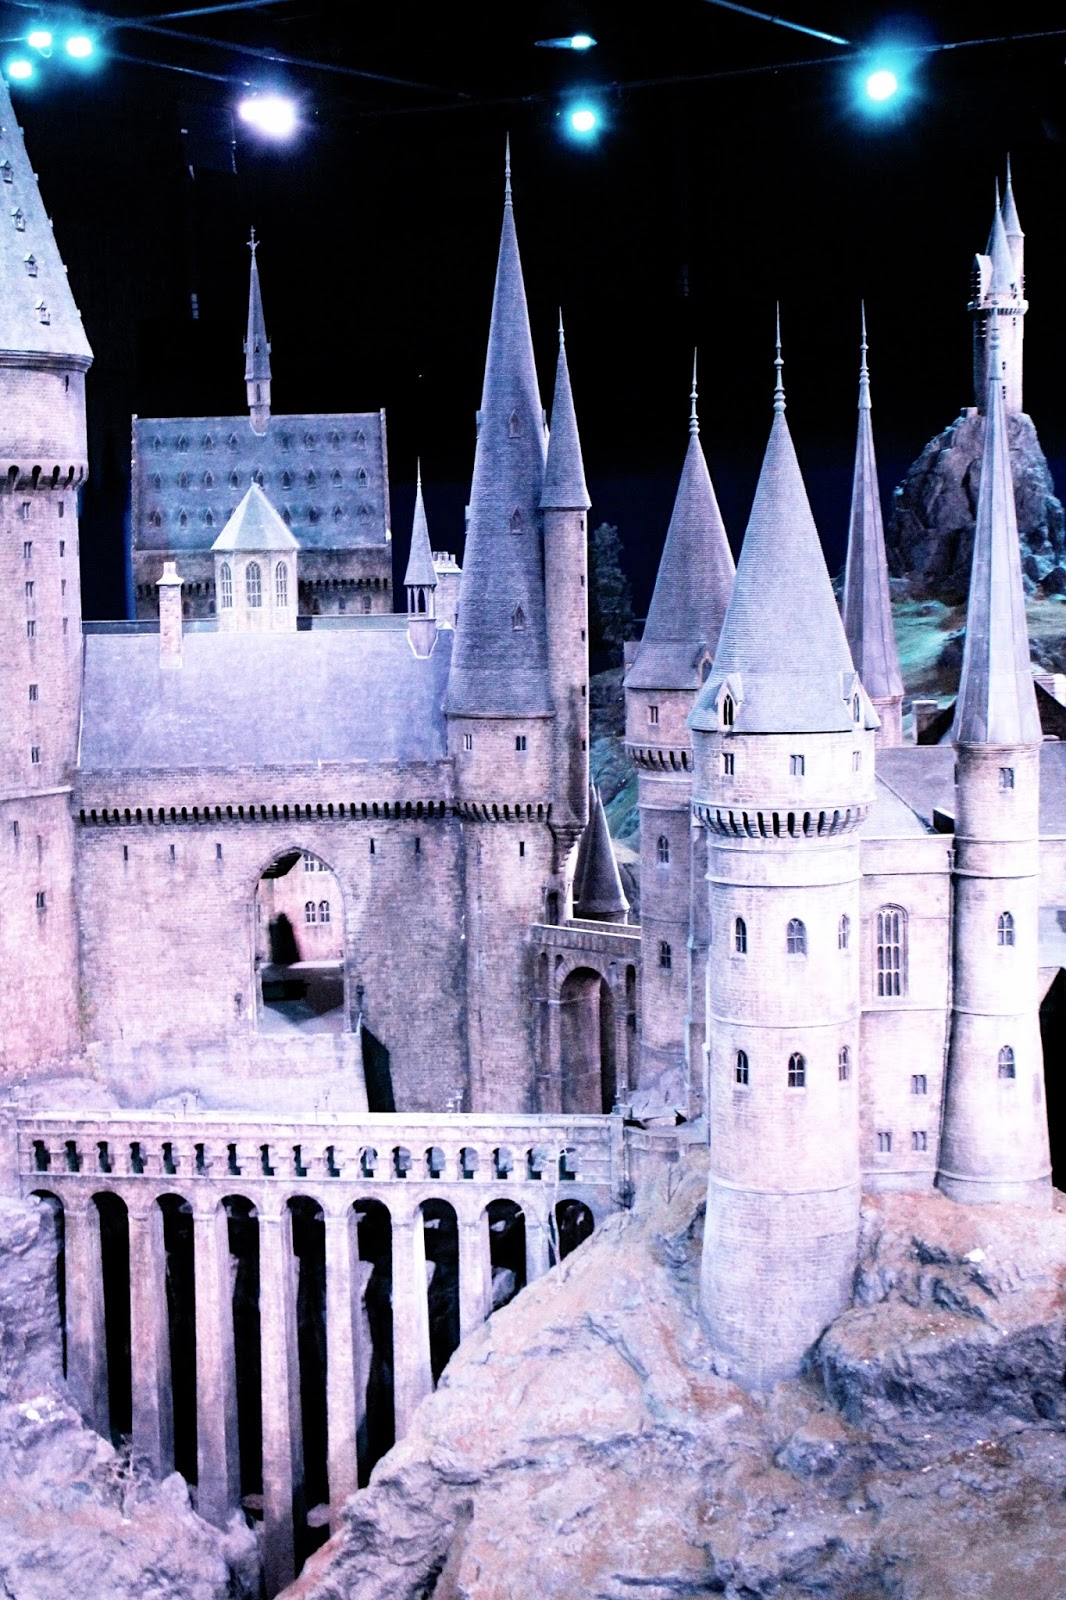 Scale Model of Harry Potter Hogwarts Castle